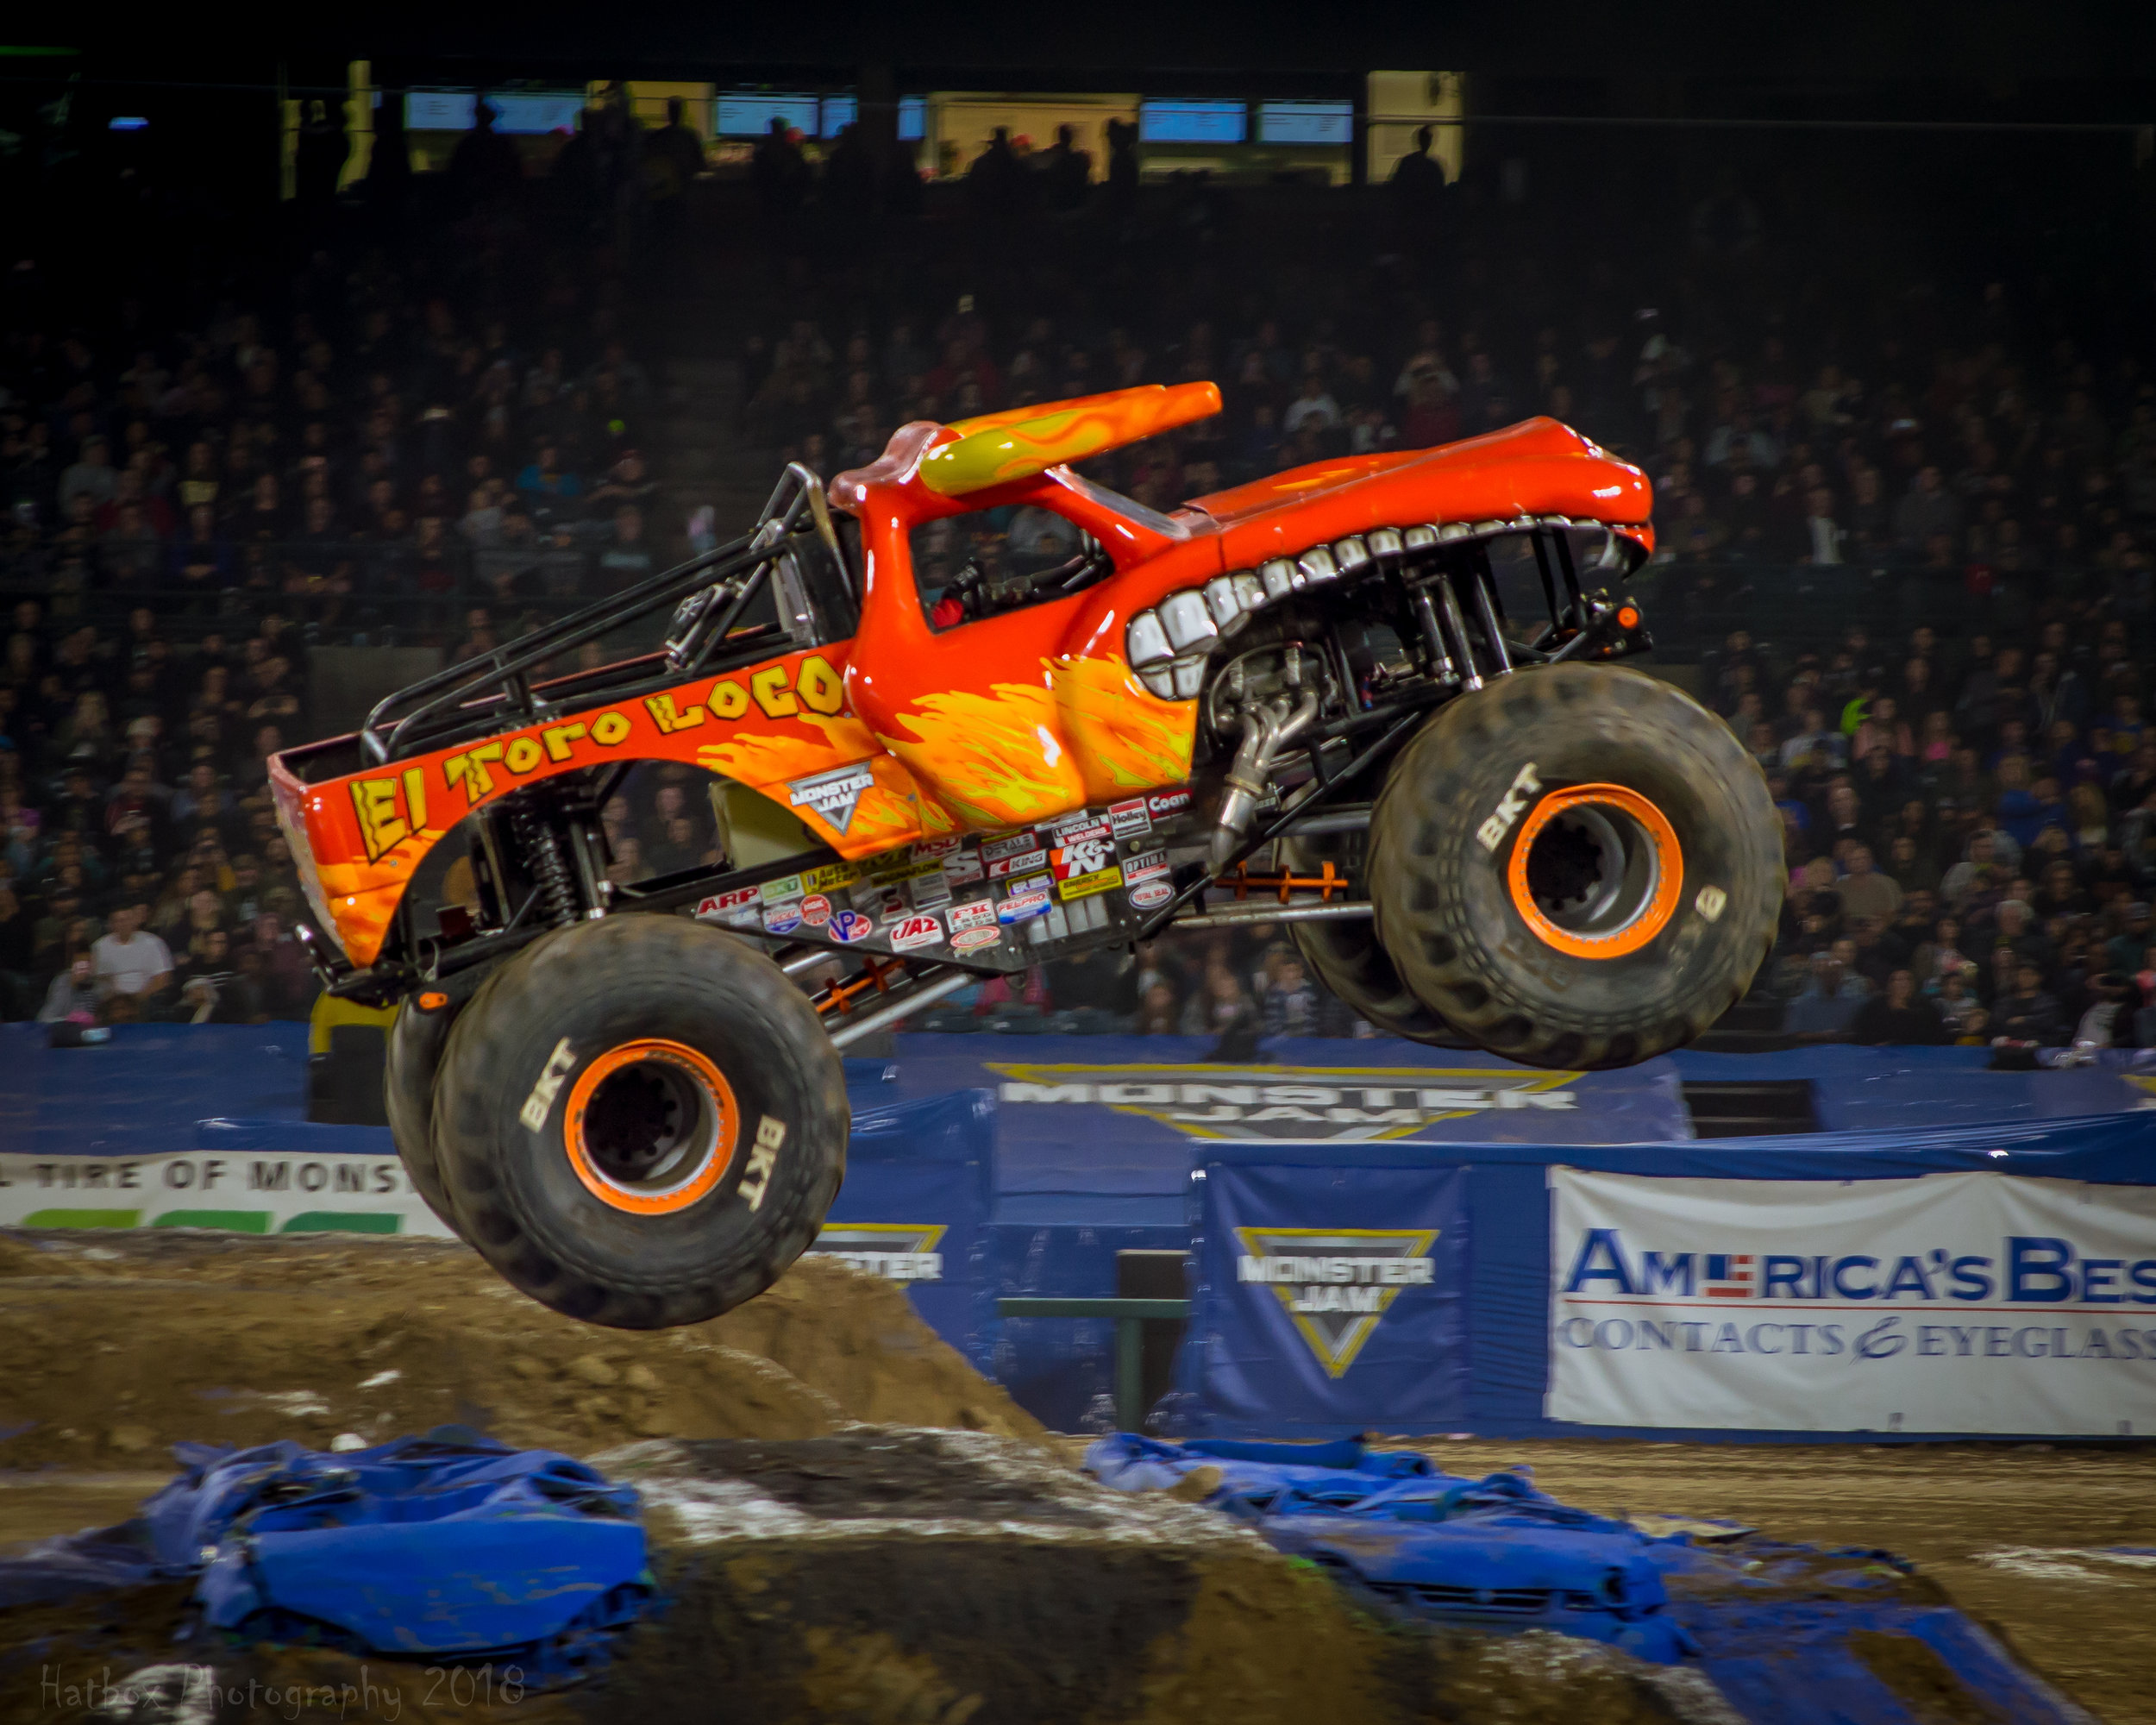 When you talk about exciting trucks to watch during a Monster Jam event, you can't forget about El Toro Loco. This bull lays down monster runs every time it is on the track. We usually see Becky McDonough who is another outstanding female driver, but this year El Toro Loco was driven by Chuck Werner and he didn't disappoint. He put together some trademark tricks of this truck while also thinking outside the box and attempting tricks that no other truck had the guts to try.